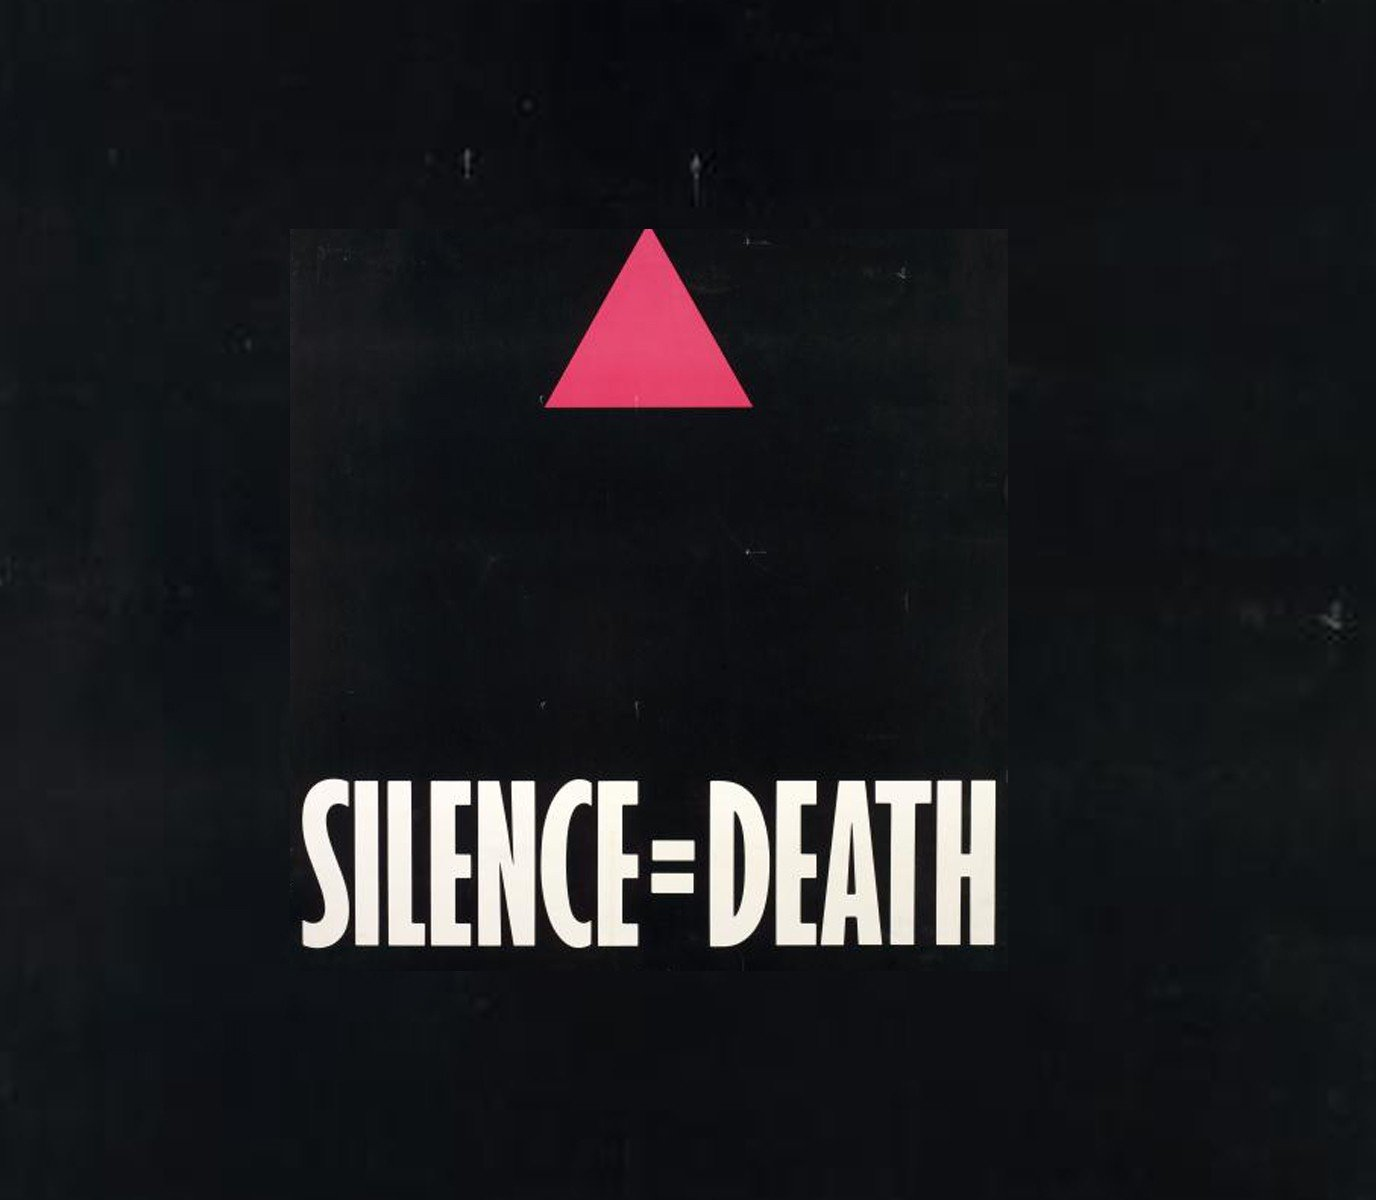 """On a black background, a small bright pink triangle hovers above a sentence that reads """"Silence = Death"""" in bold uppercase block letters"""